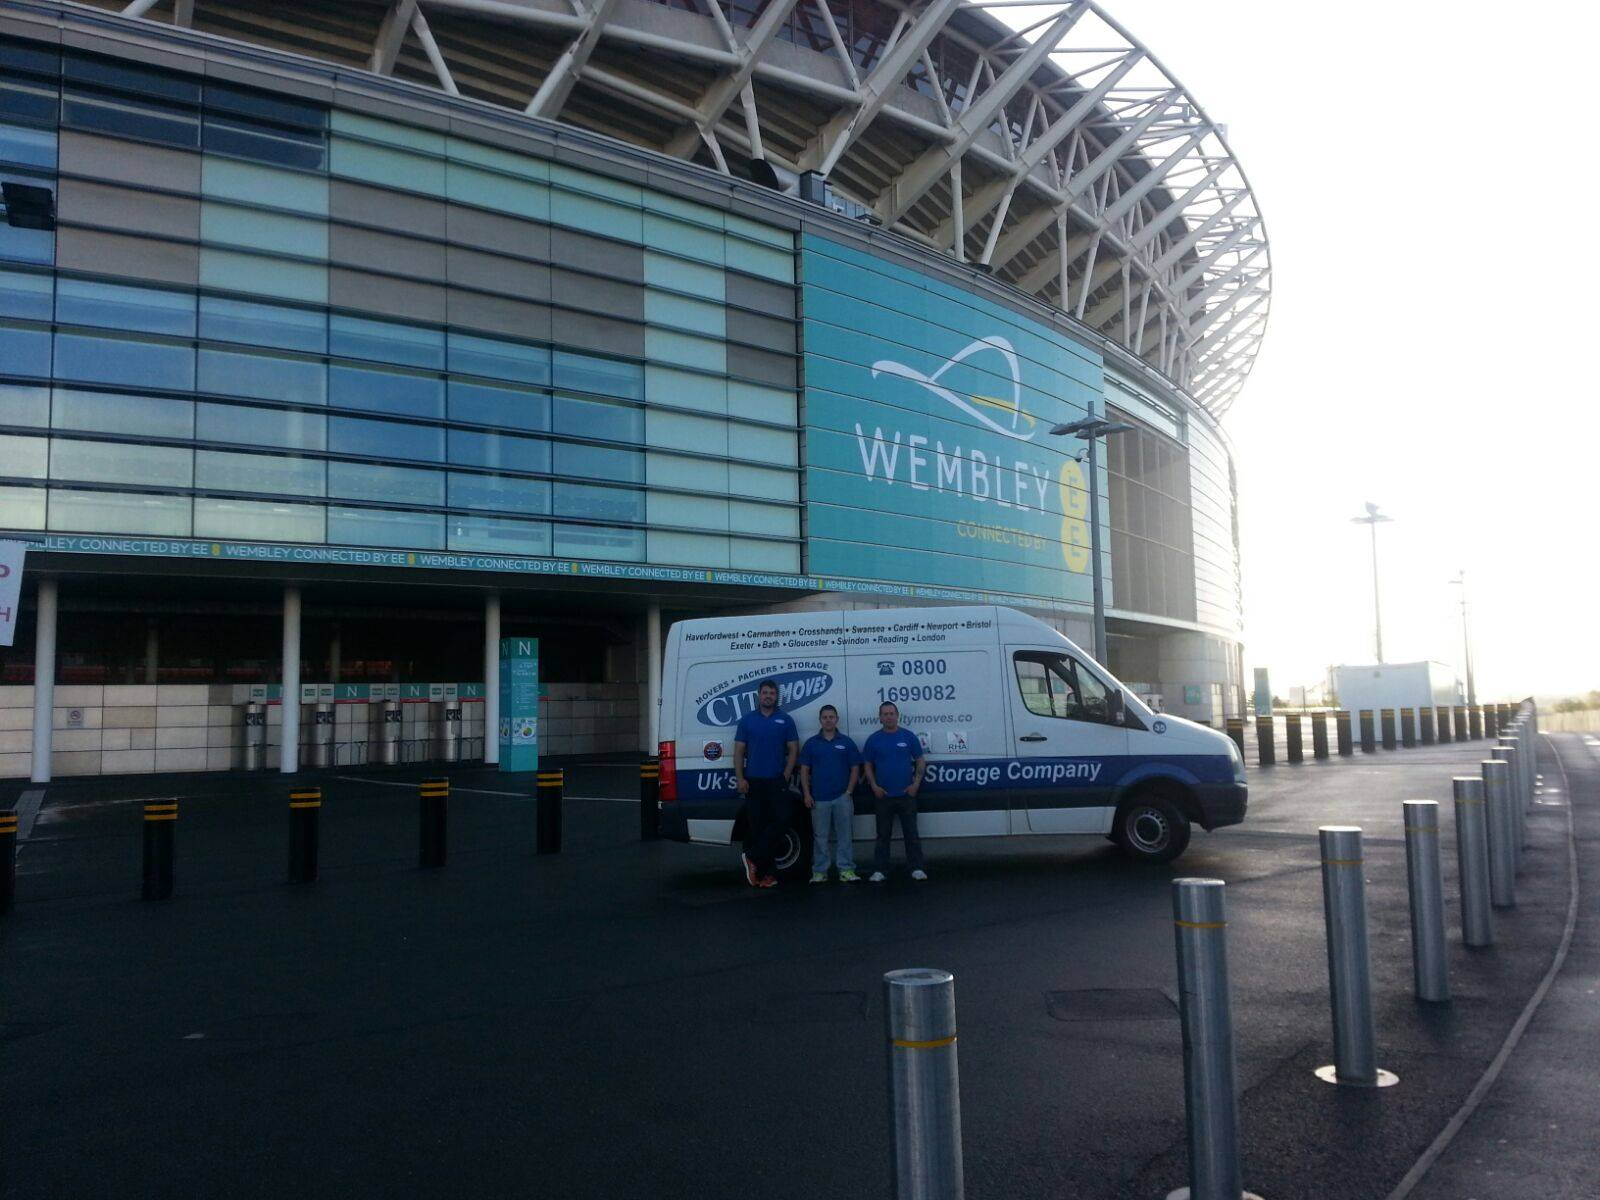 City Moves Removals in Wembley Stadium